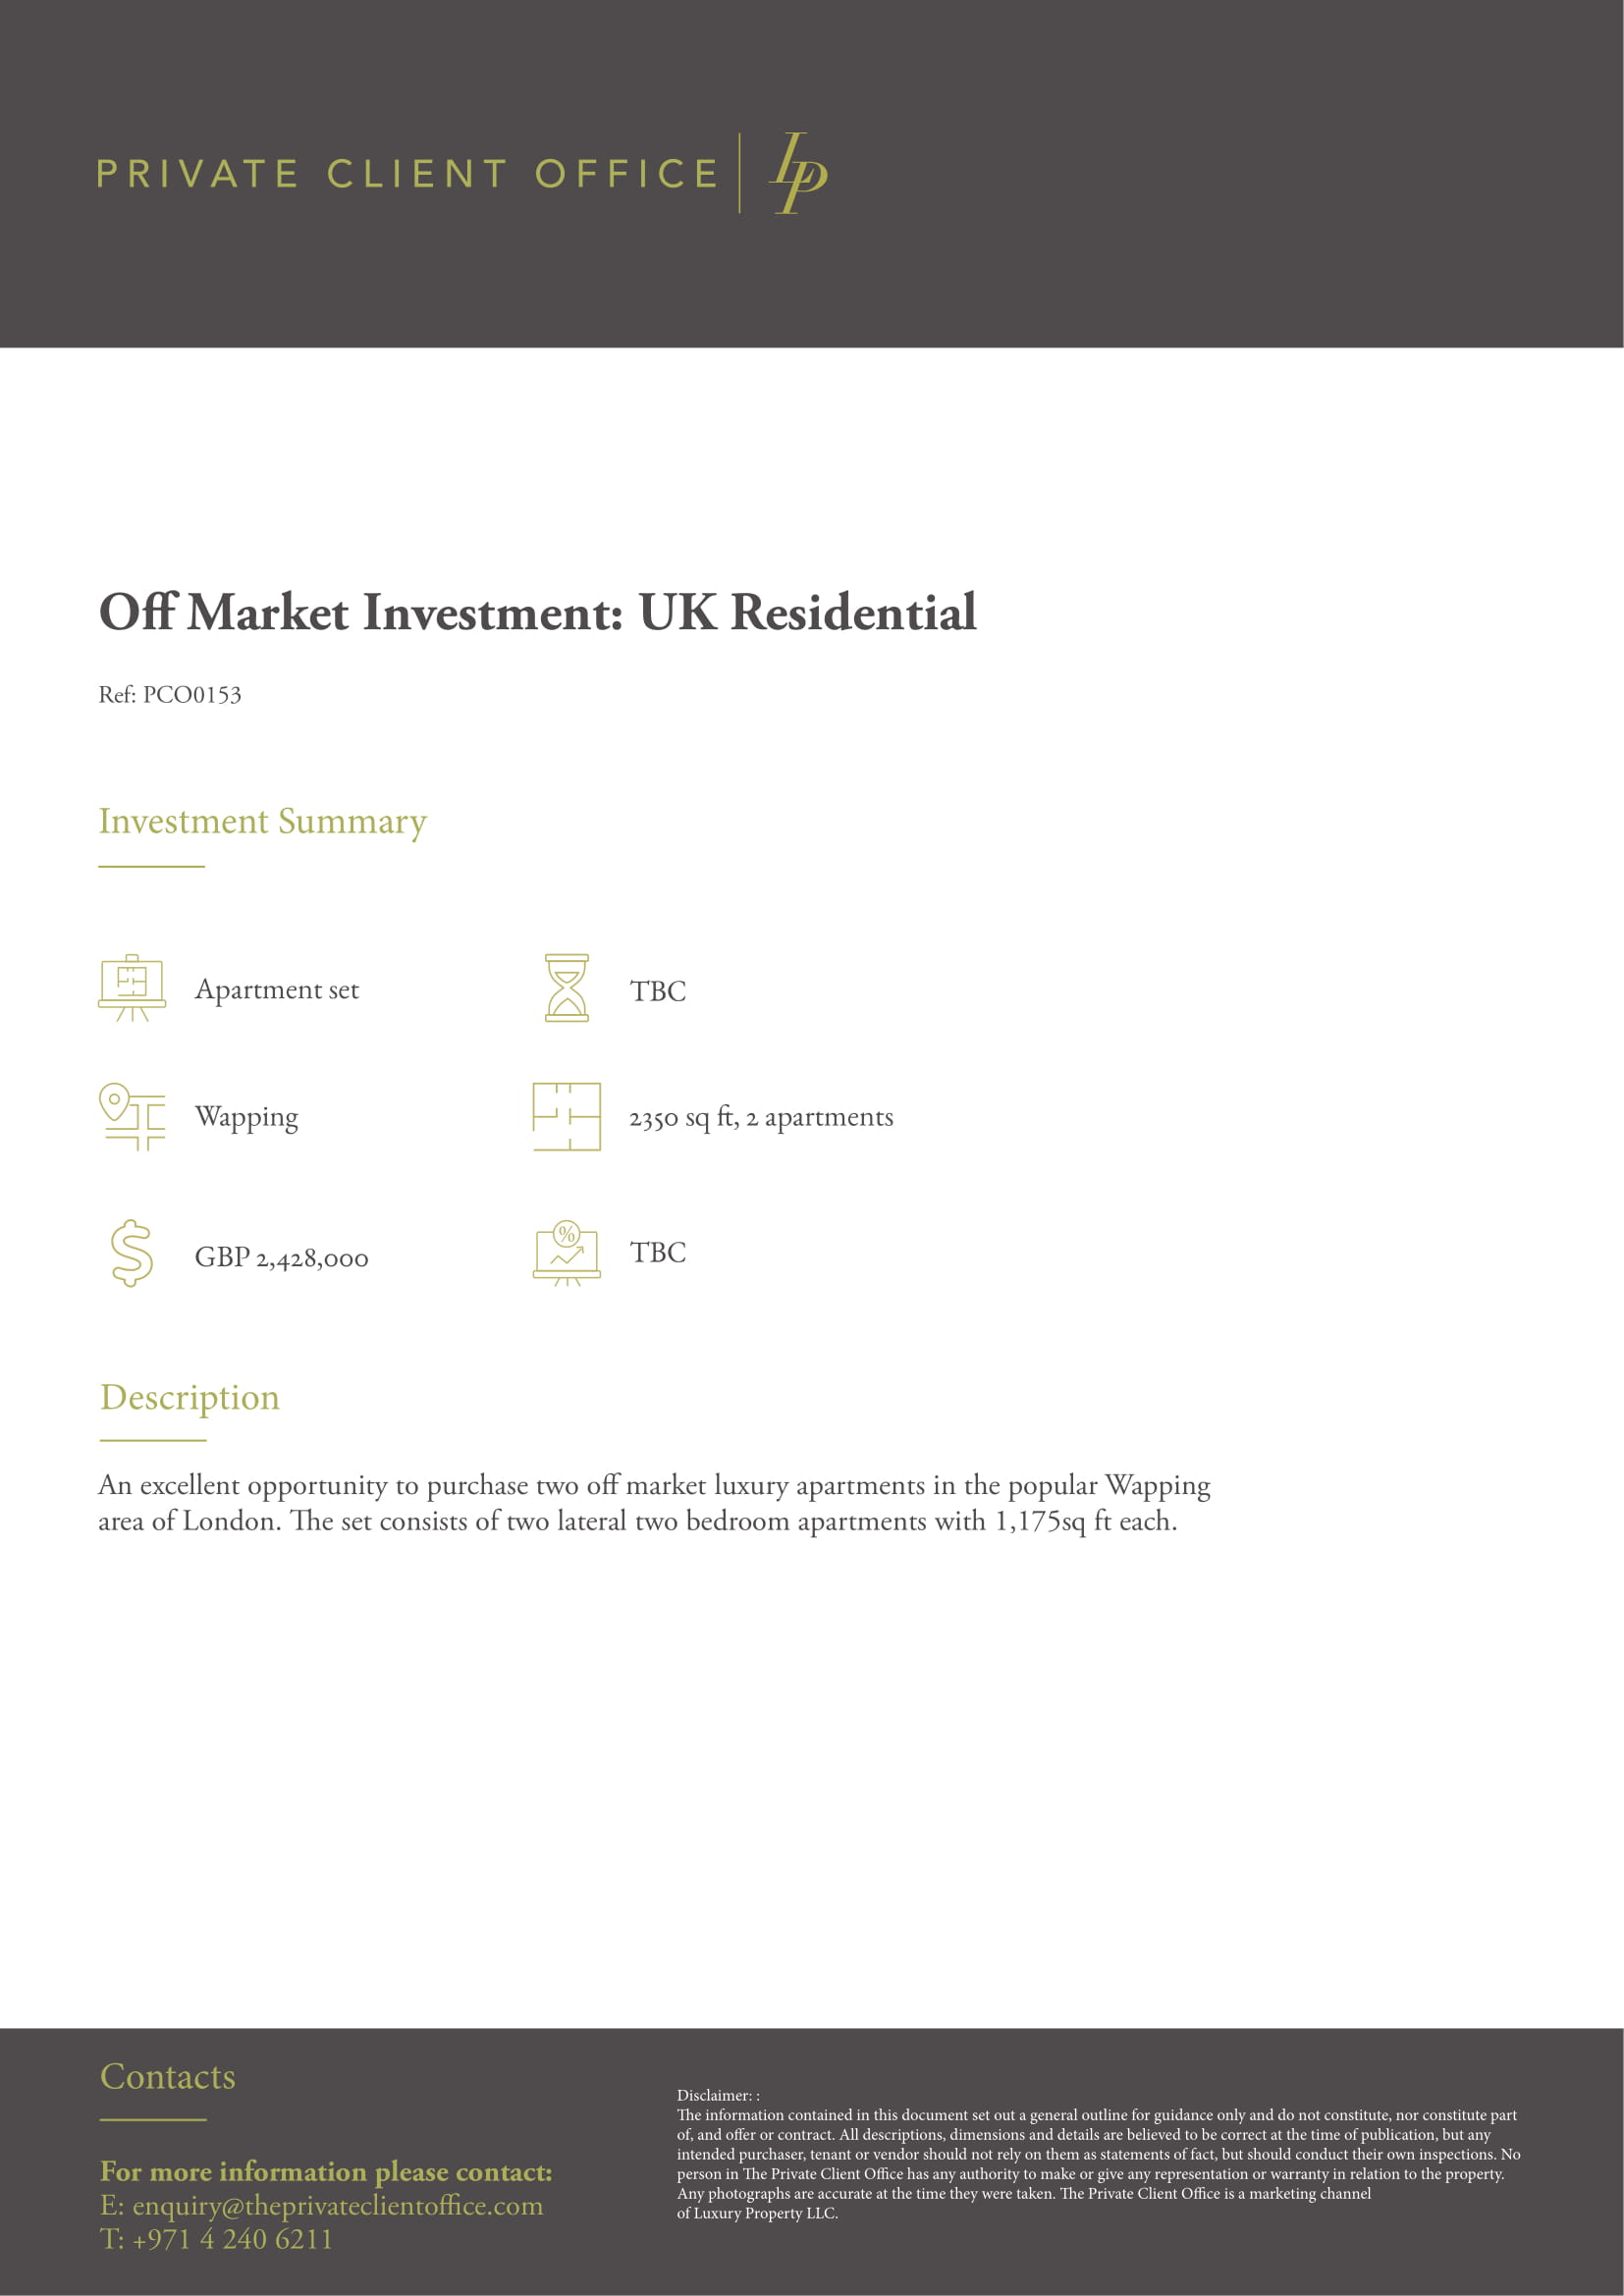 Off Market Investment: UK Residential - PCO0153